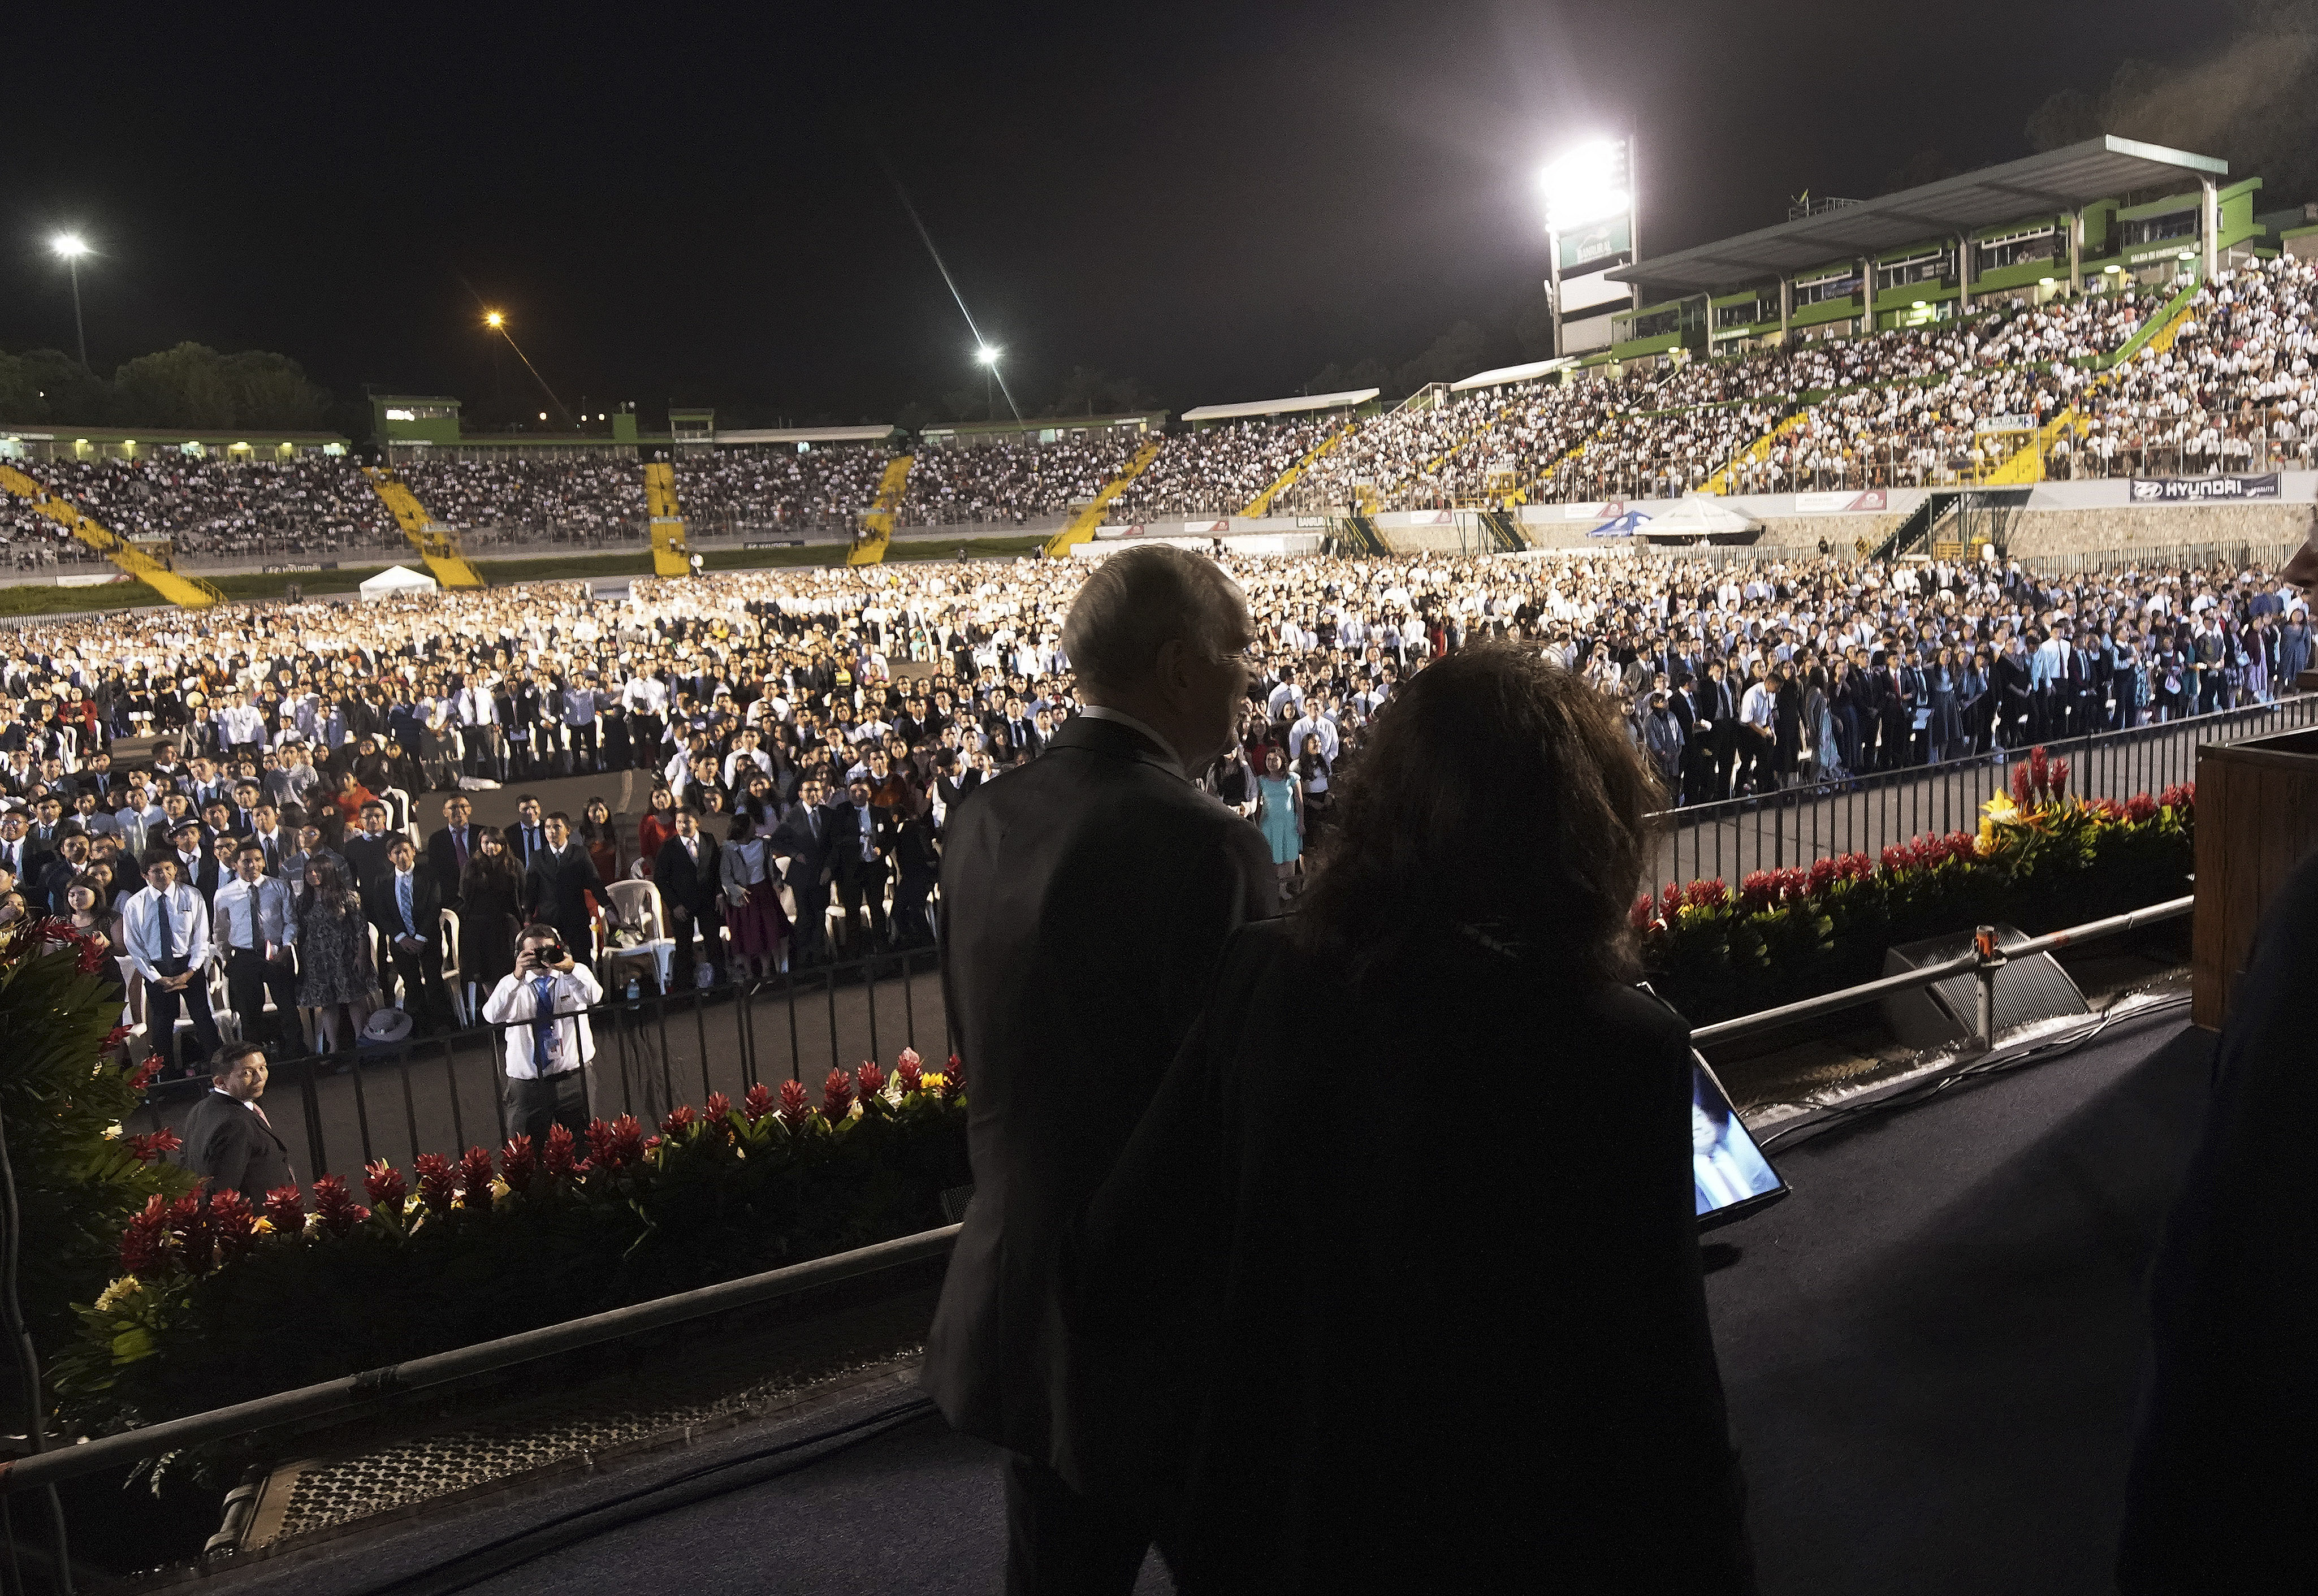 President Russell M. Nelson of The Church of Jesus Christ of Latter-day Saints and his wife Sister Wendy Nelson take the stage during a devotional at Estadio Cementos Progreso stadium in Guatemala City on Saturday, Aug. 24, 2019.